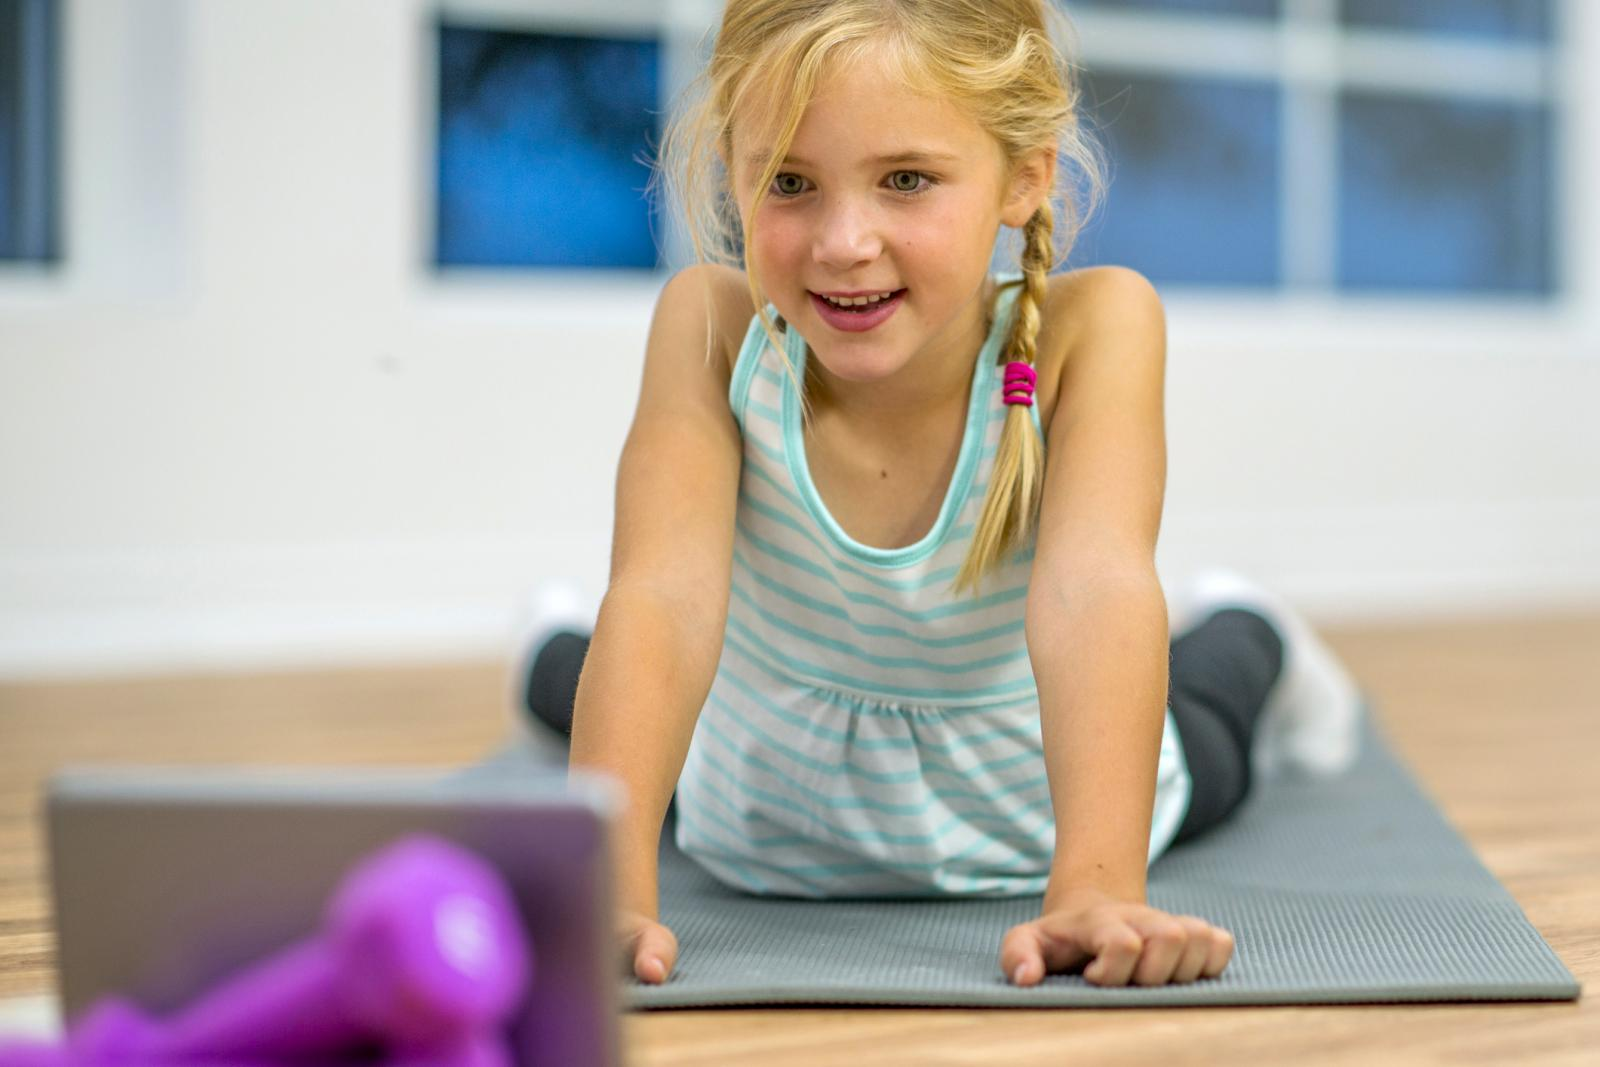 An elementary age girl is doing yoga on an exercise mat